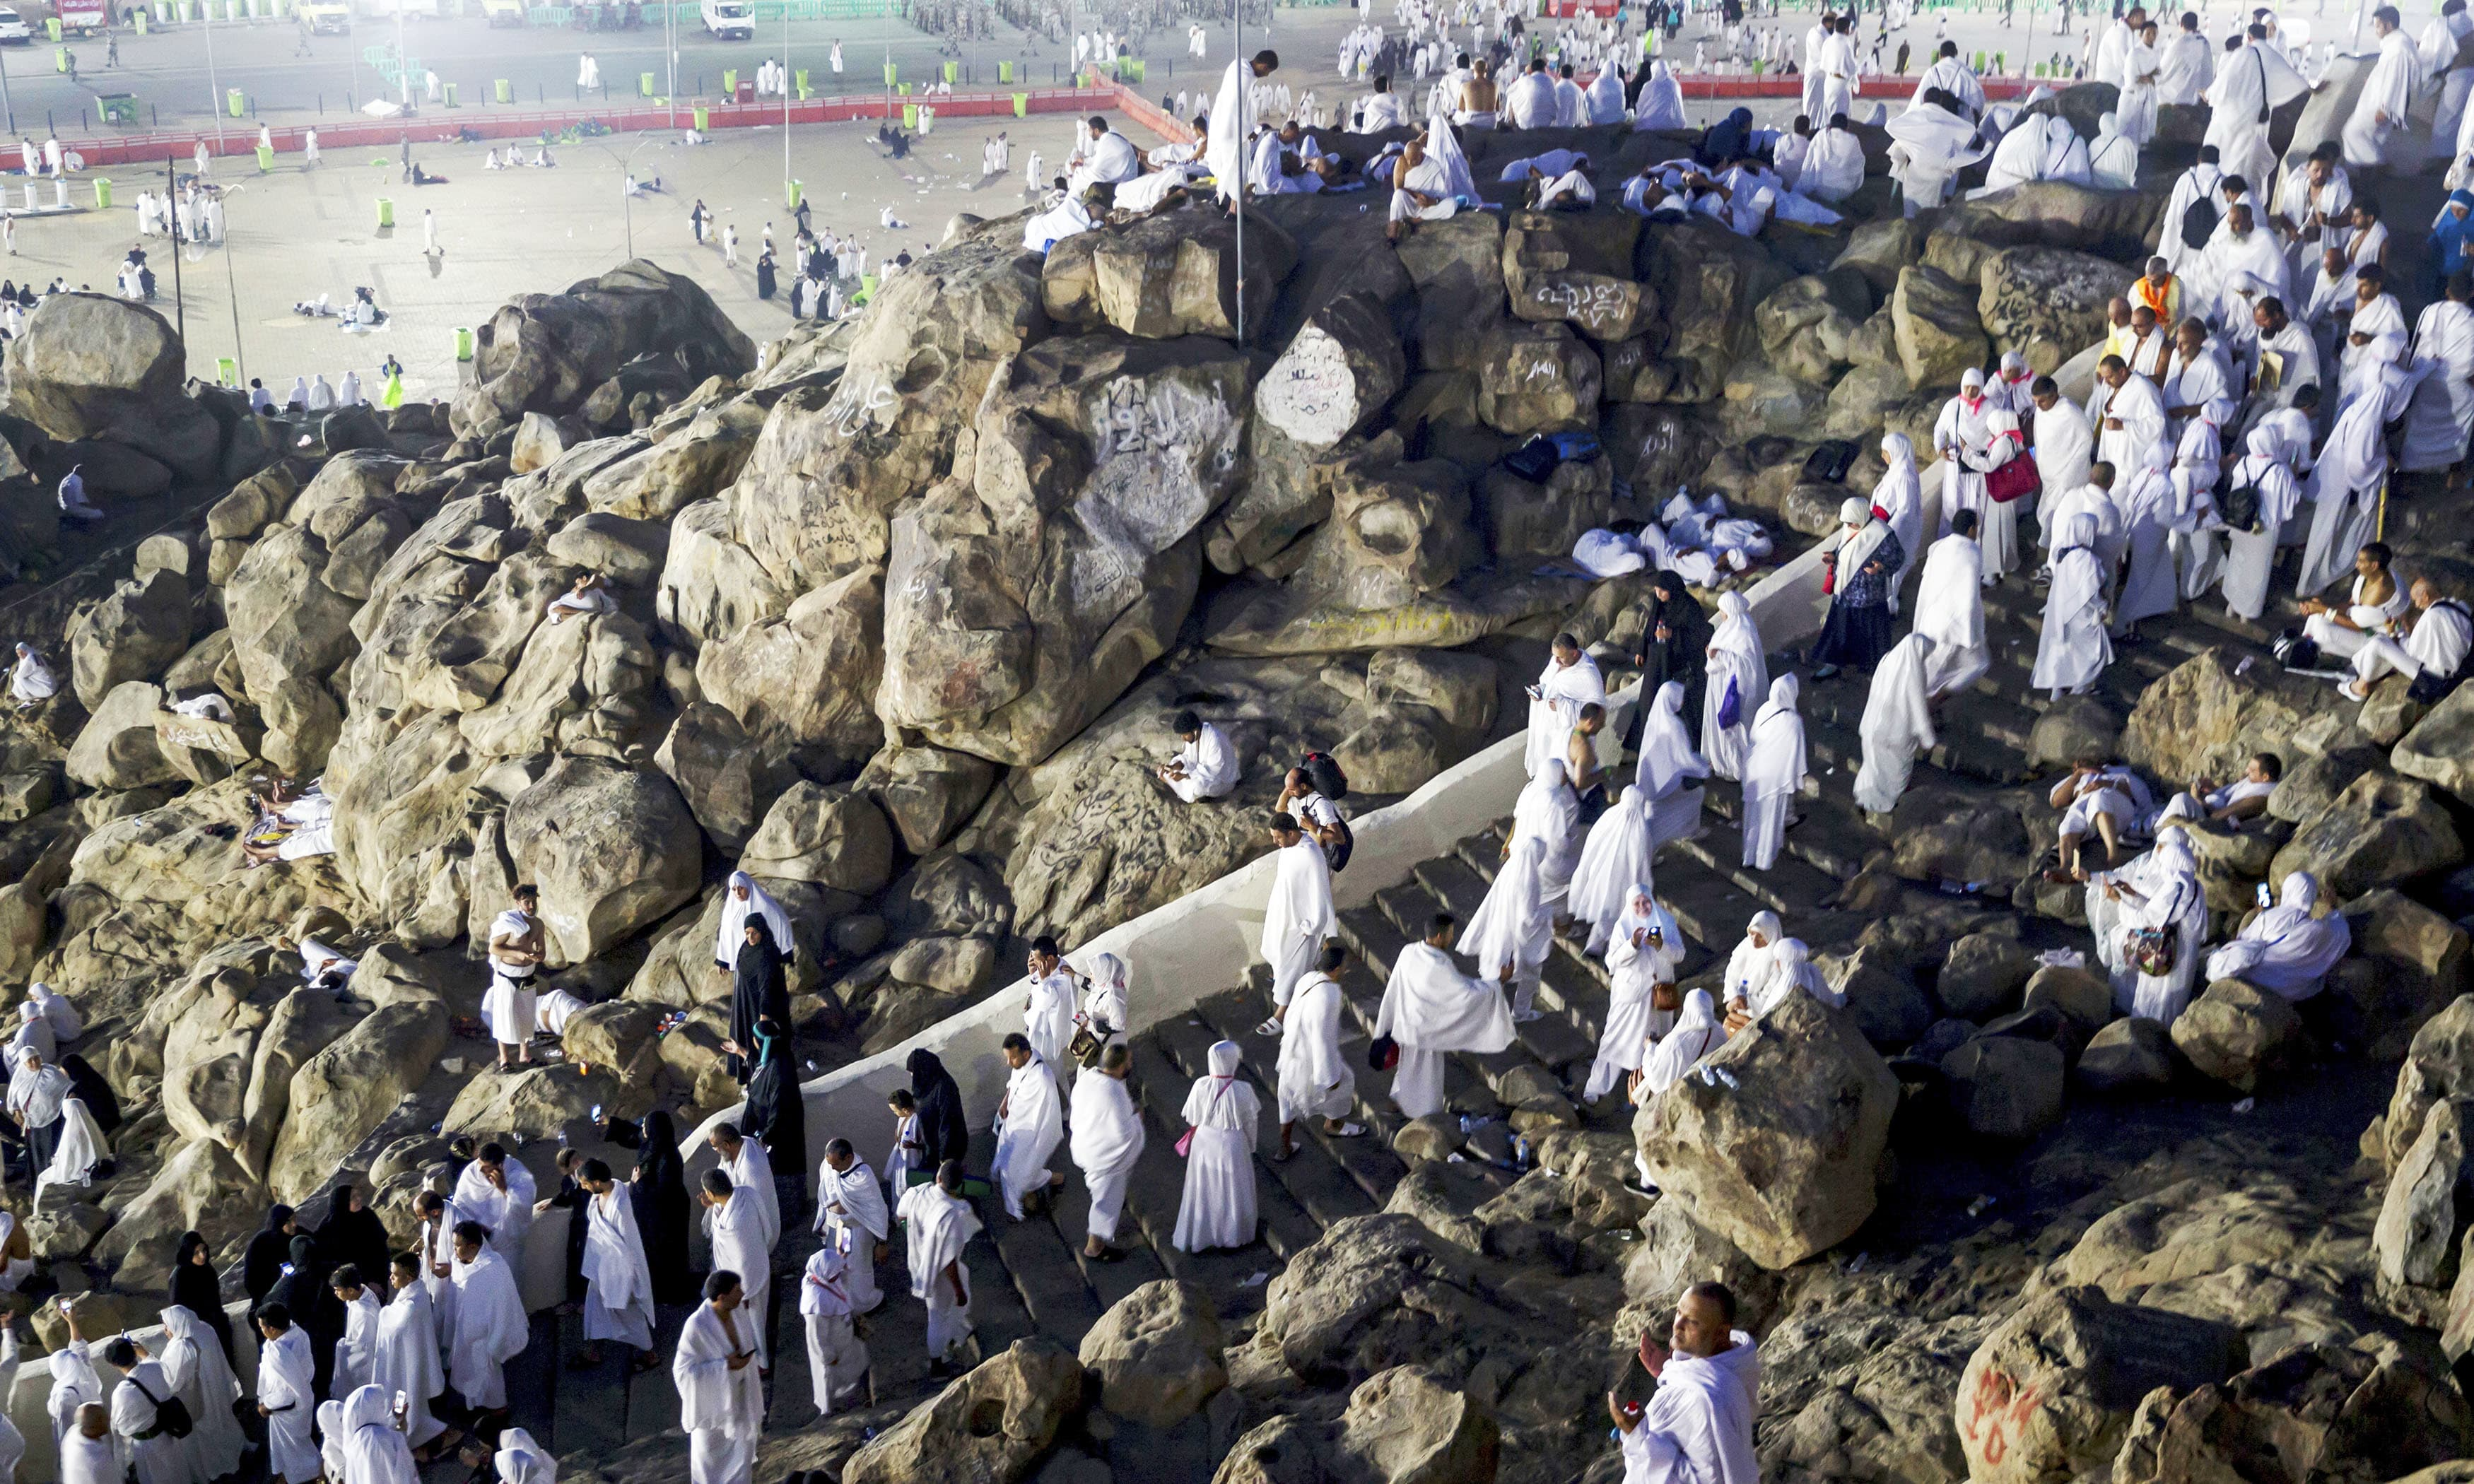 Pilgrims visit the Jabal Al Rahma holy mountain, or the mountain of forgiveness, upon their arrival to Arafat for the annual Haj pilgrimage. —AP